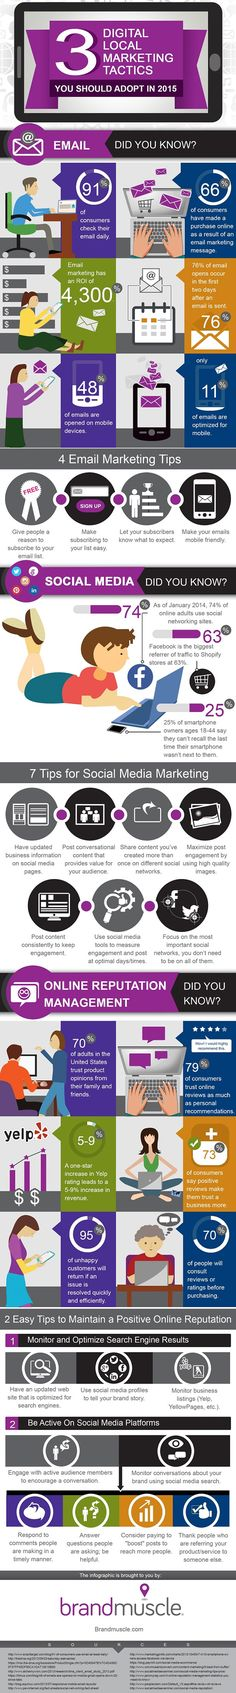 Digital Marketing (Infographic)